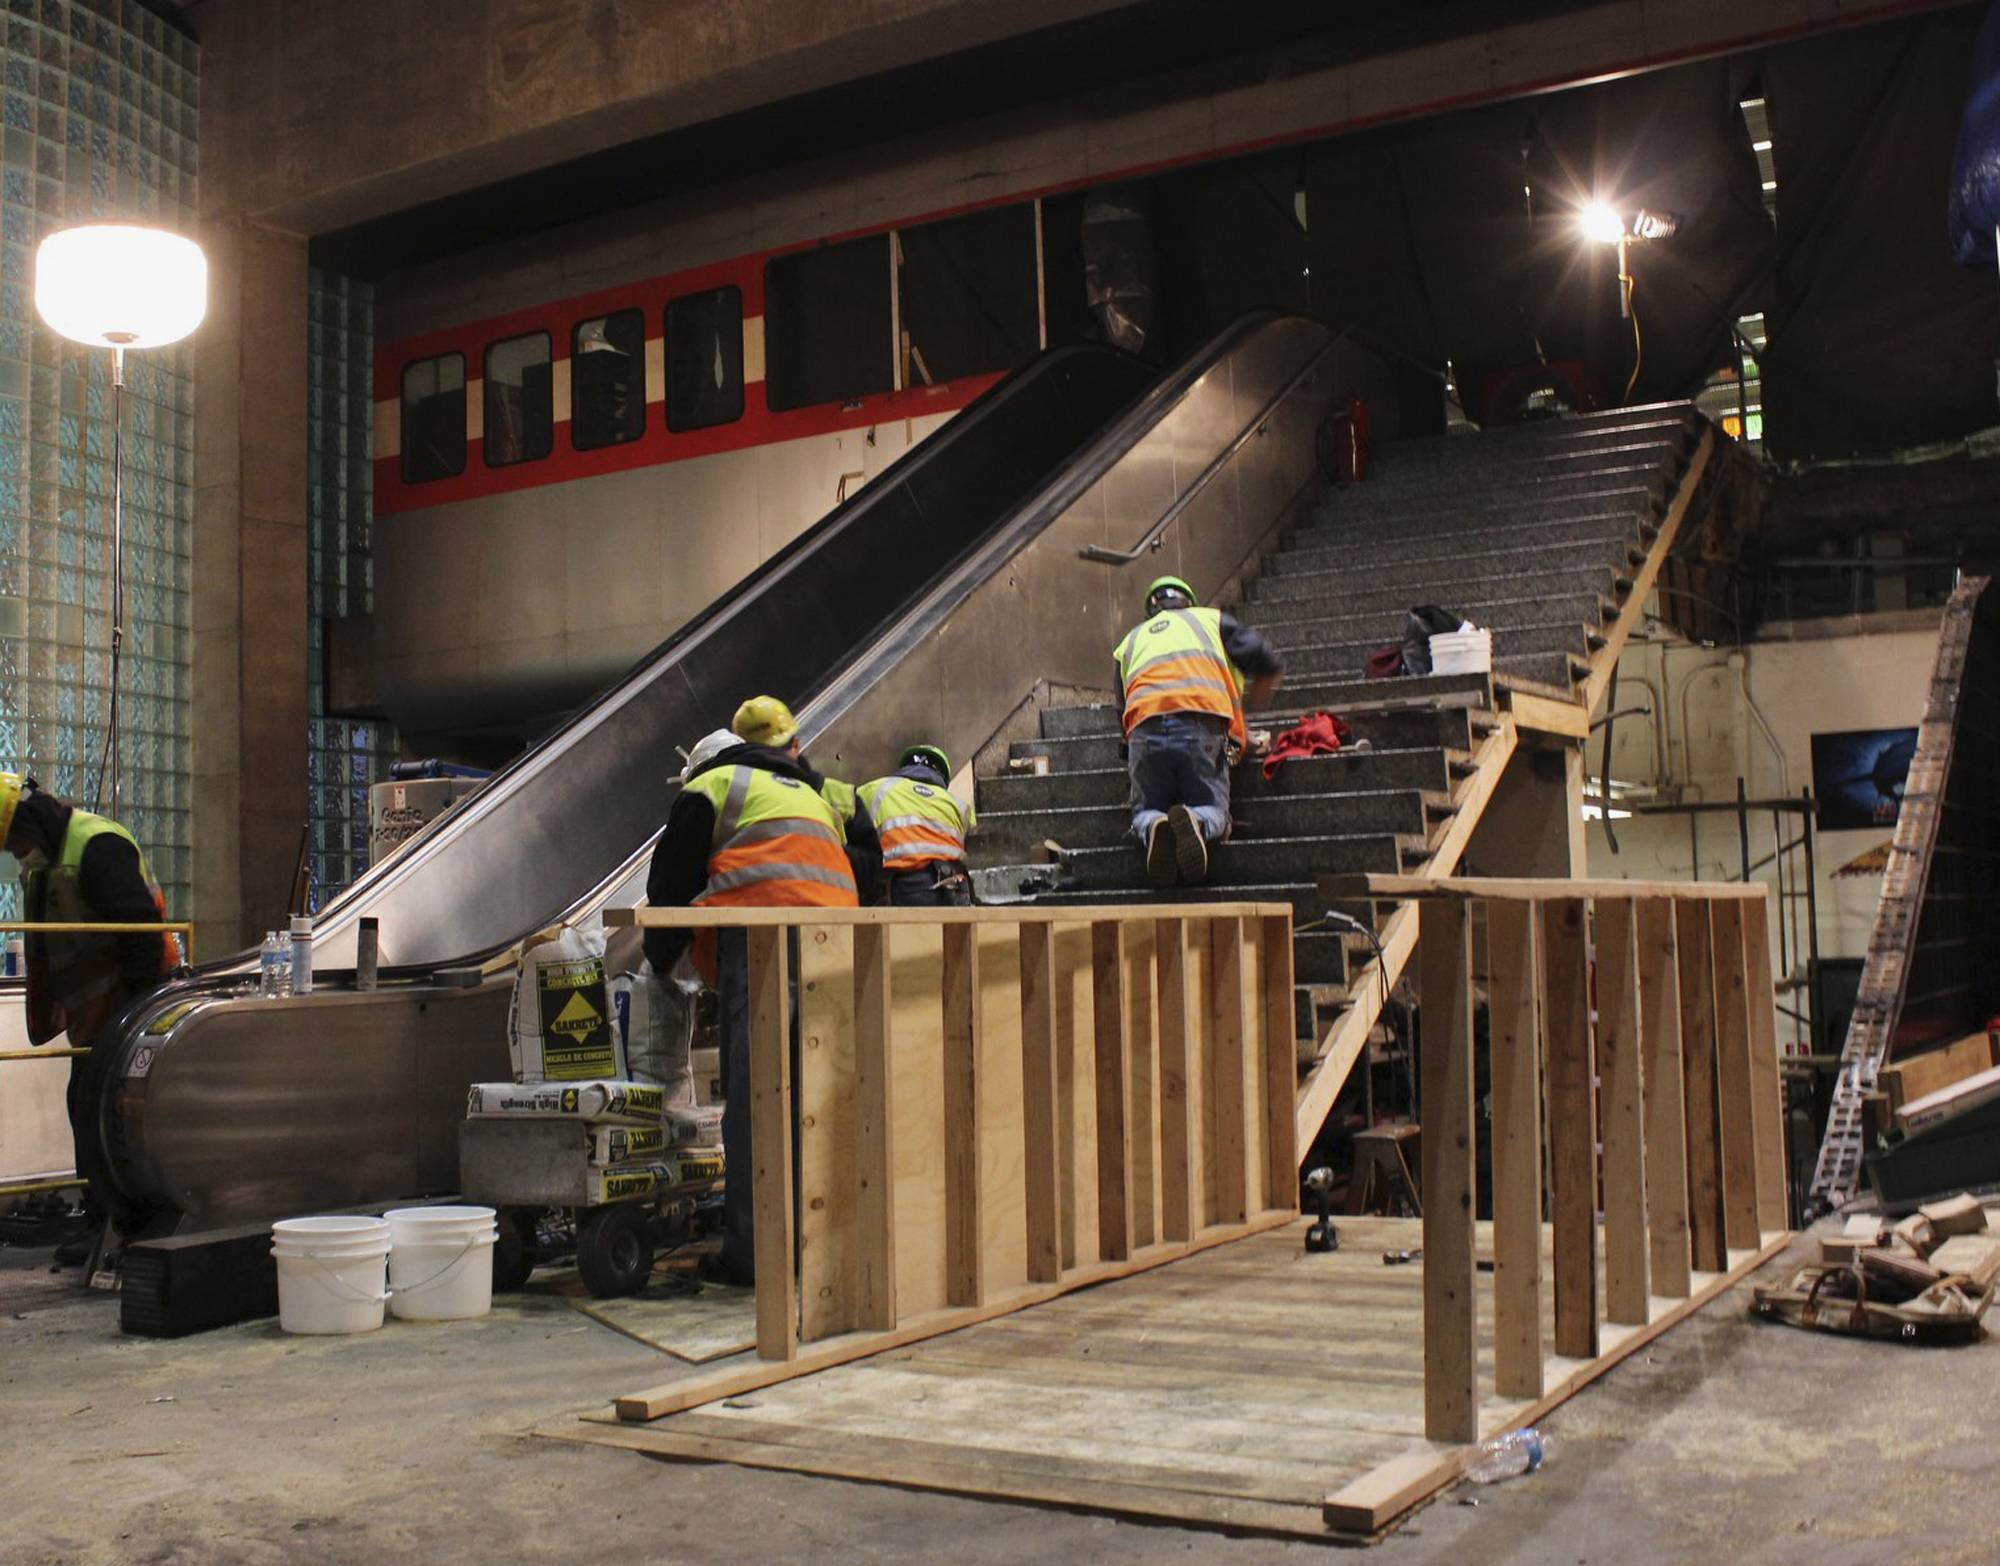 CTA reopens O'Hare station after derailment